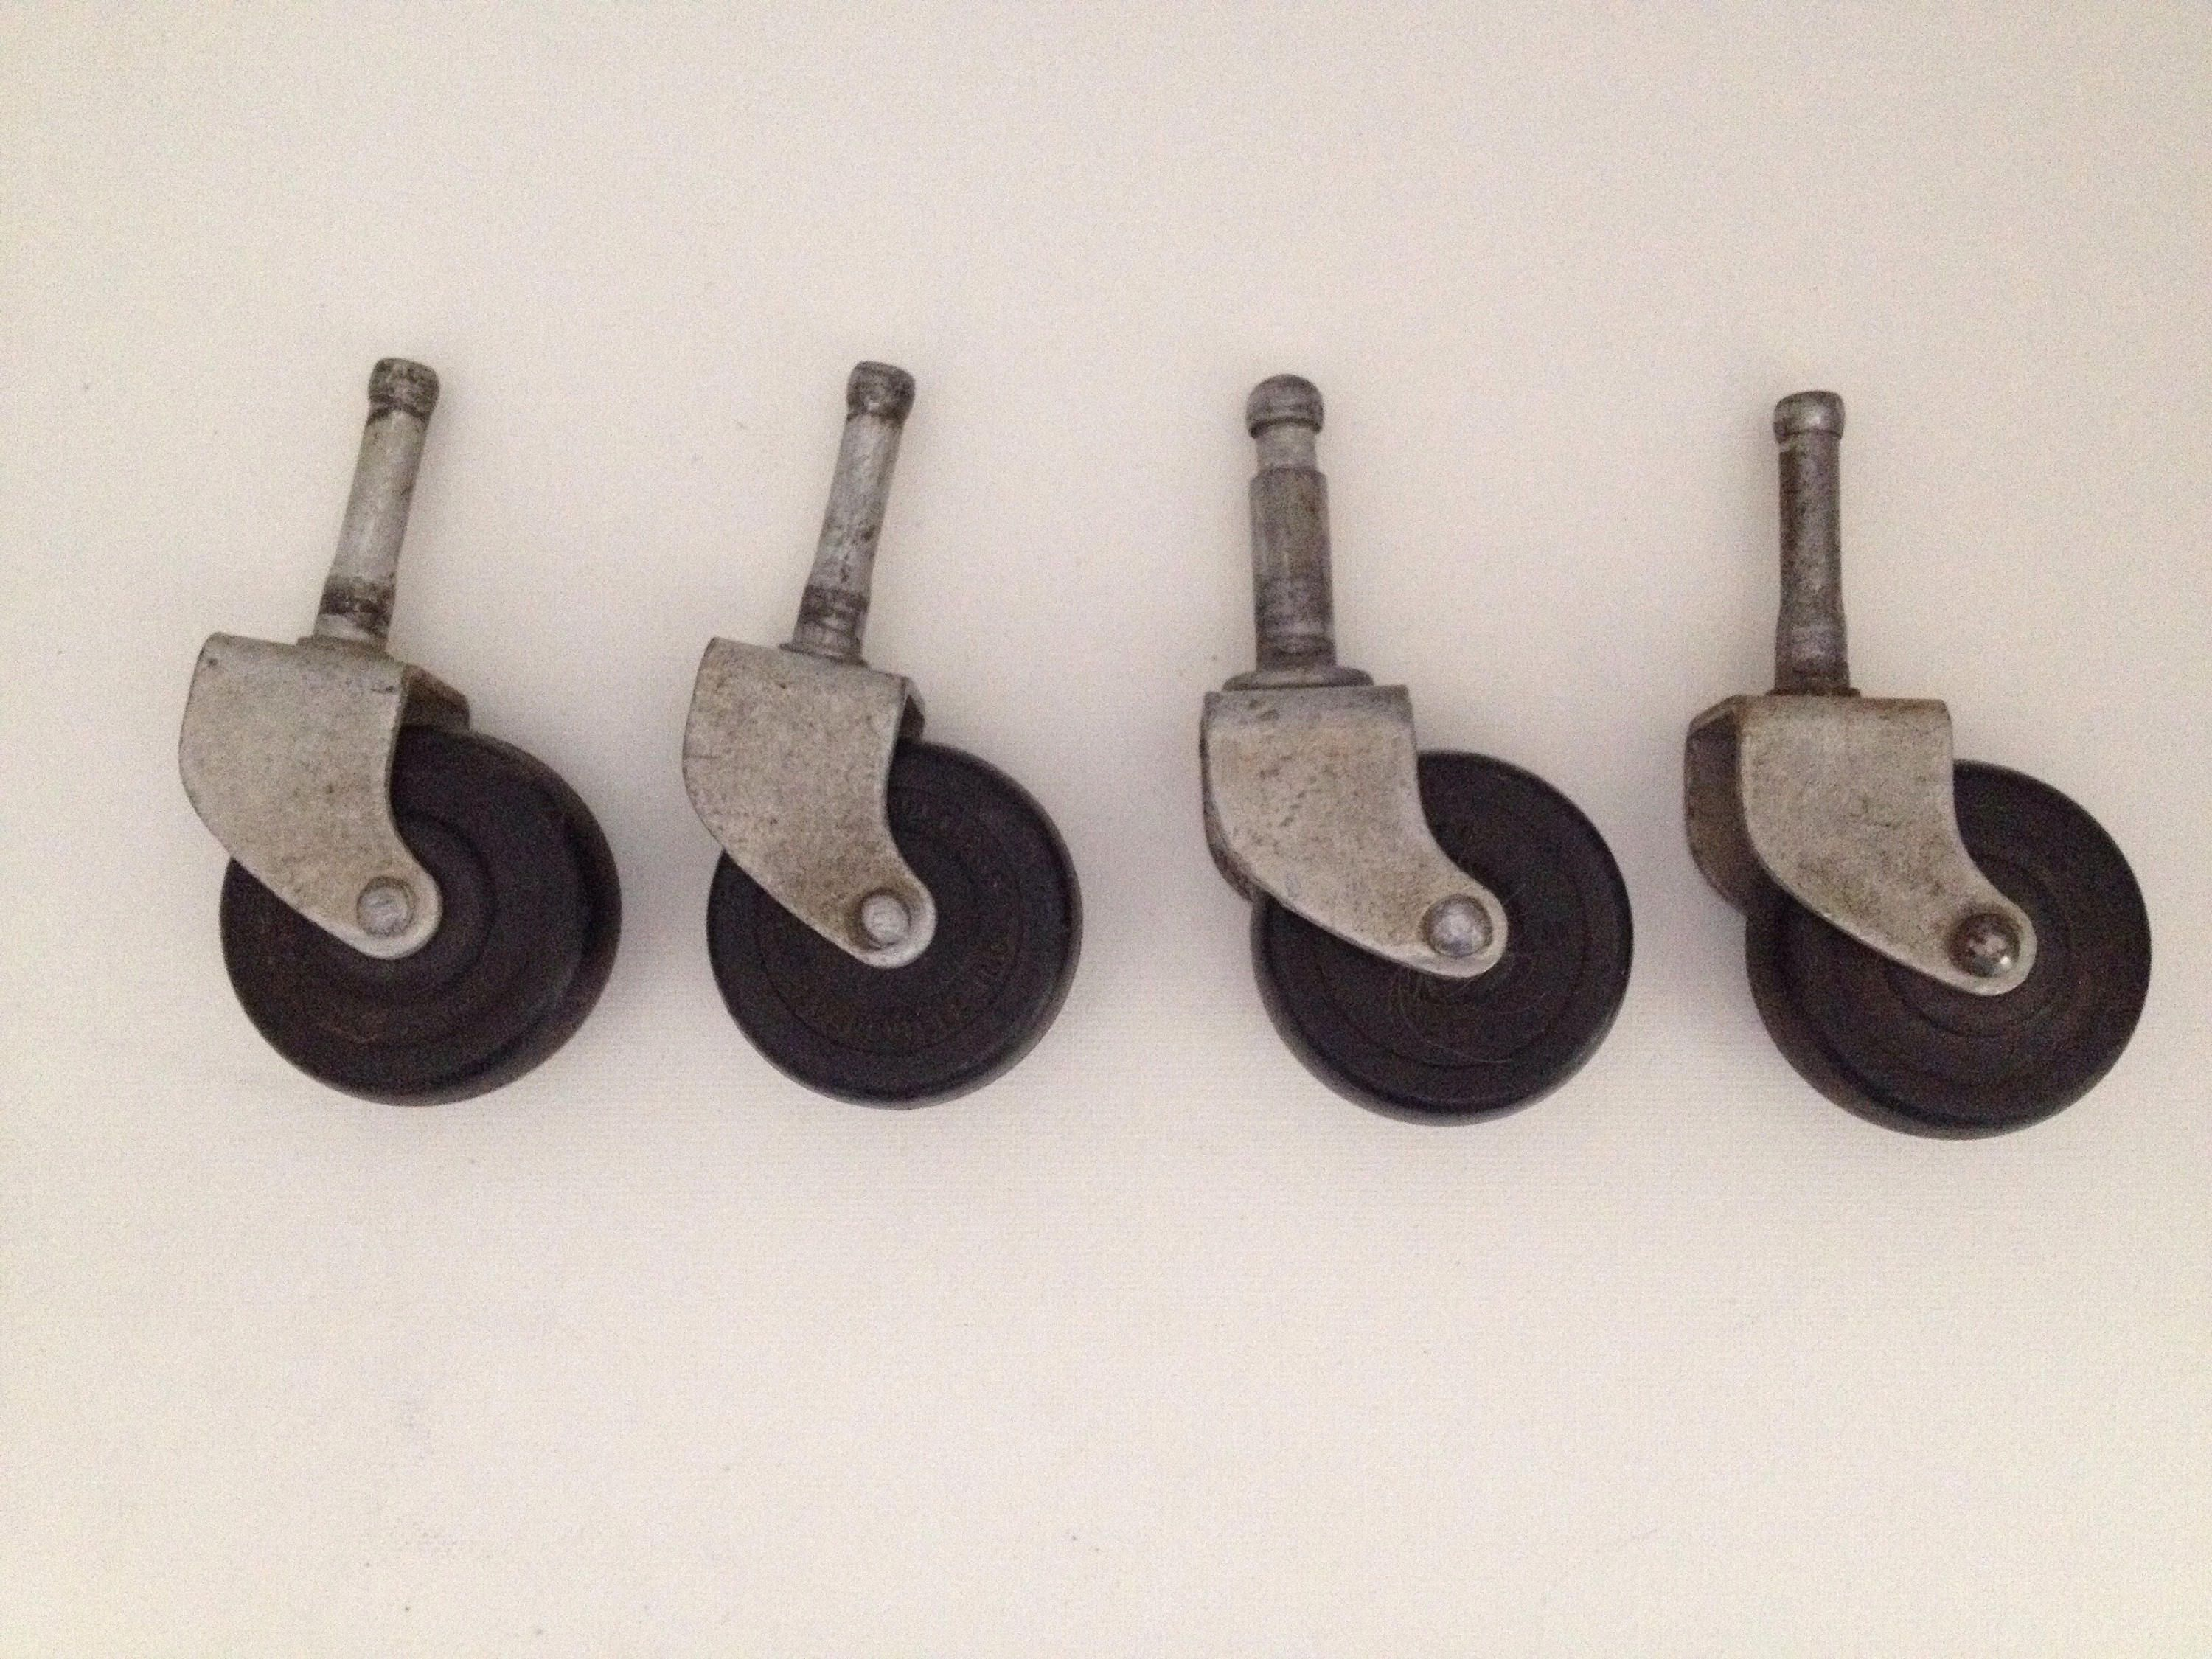 Noelting Faultless Caster Wheels 2 Inch Lot Of 4 Stem Wheel Casters No 17 Industrial Peg Vintage Hardware Evansille I Vintage Hardware Casters Wheels Hardware